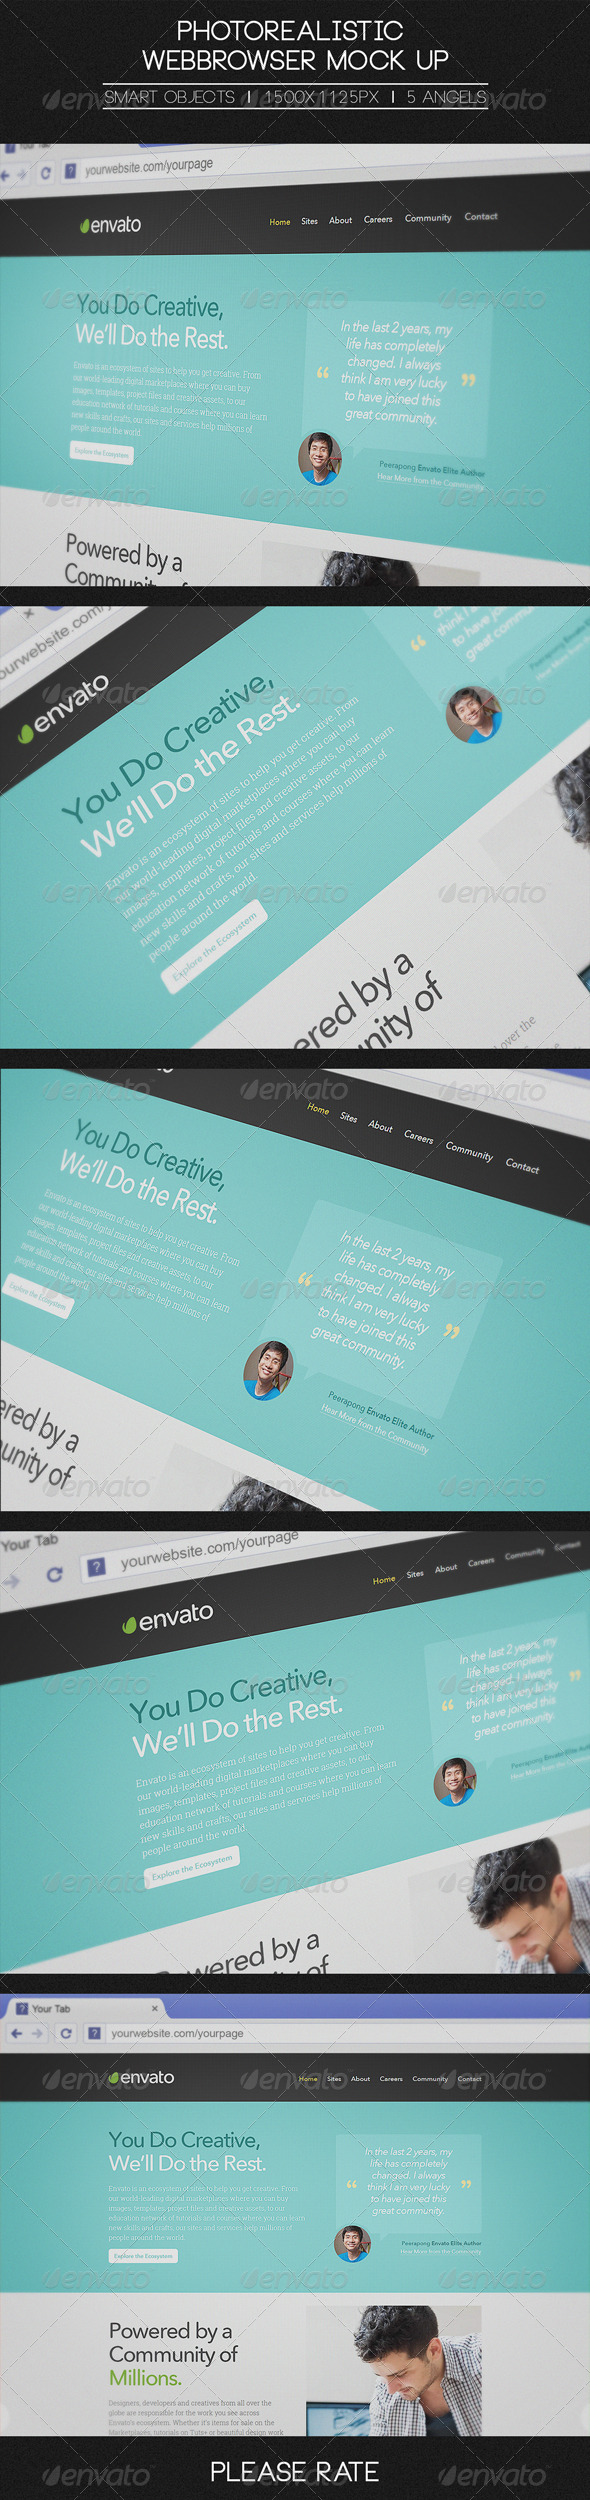 GraphicRiver Photorealistic Webbrowser Mock-Up 6482991